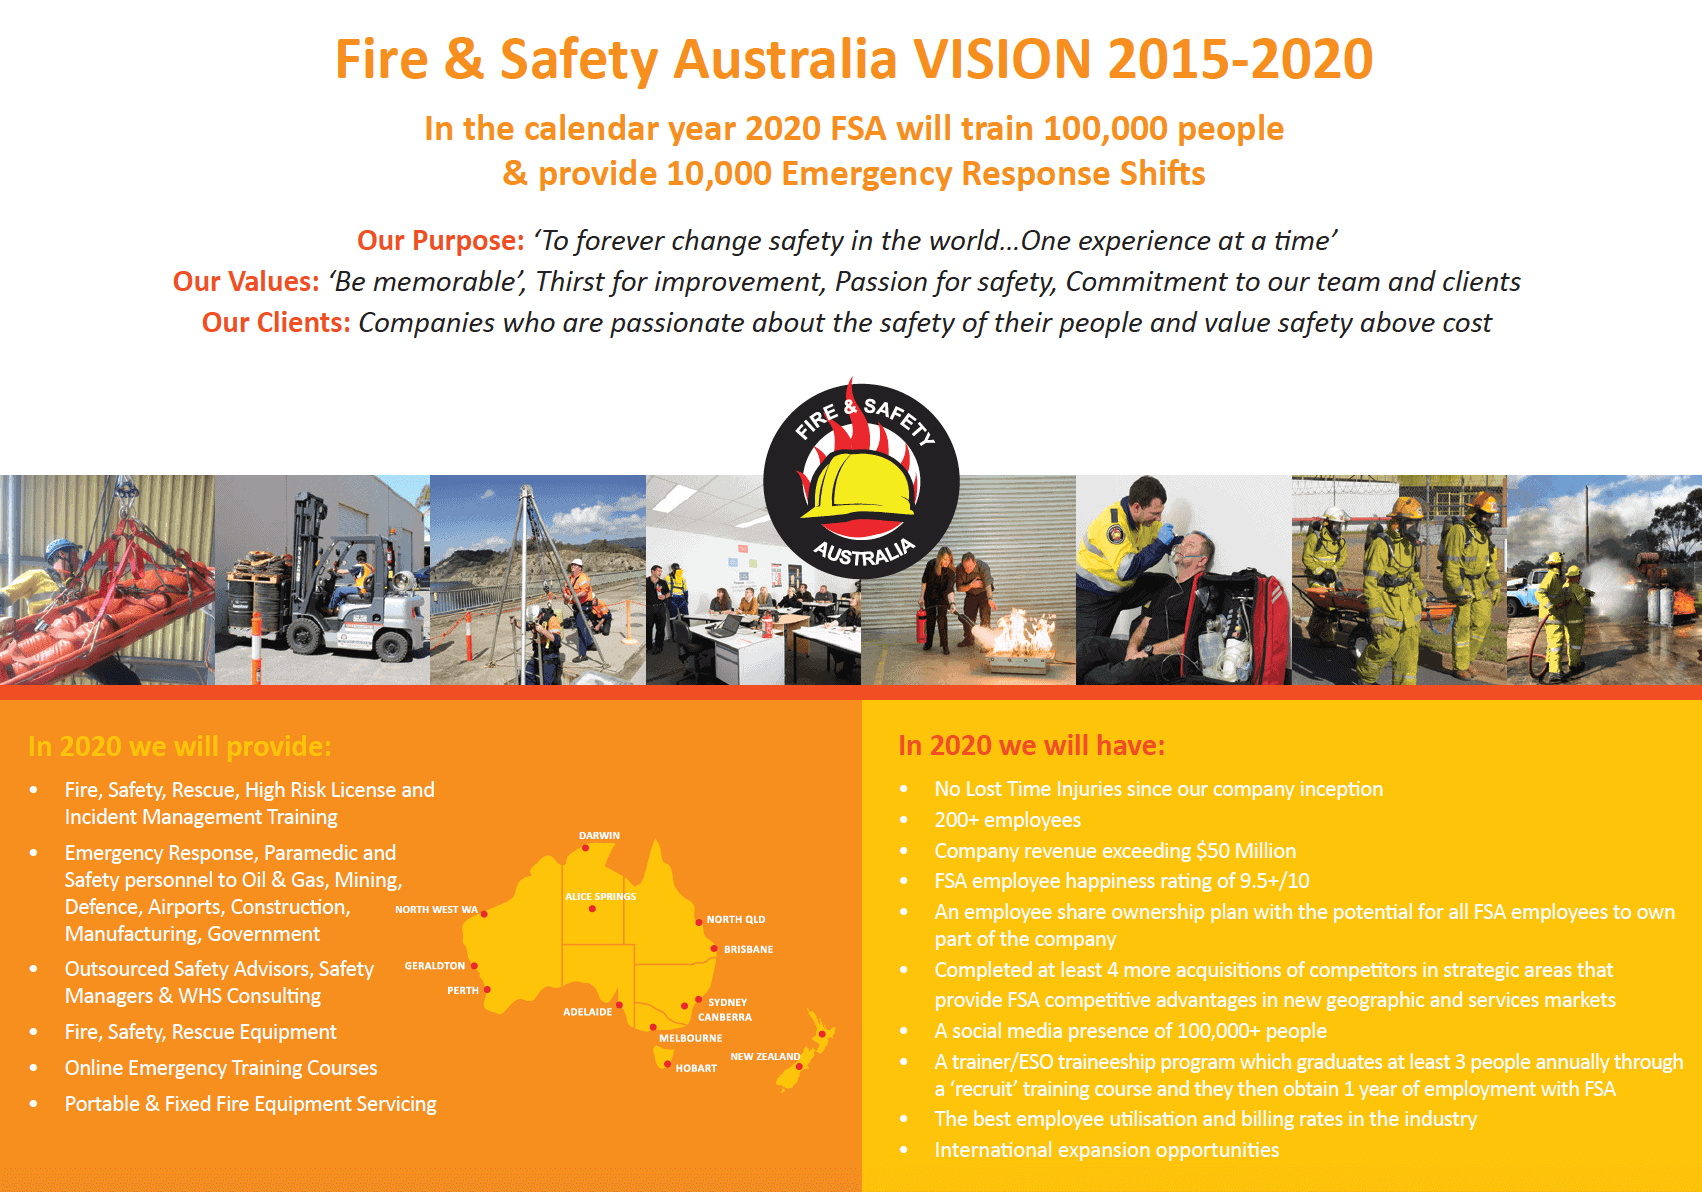 Fire and Safety Australia Vision 2015-2020